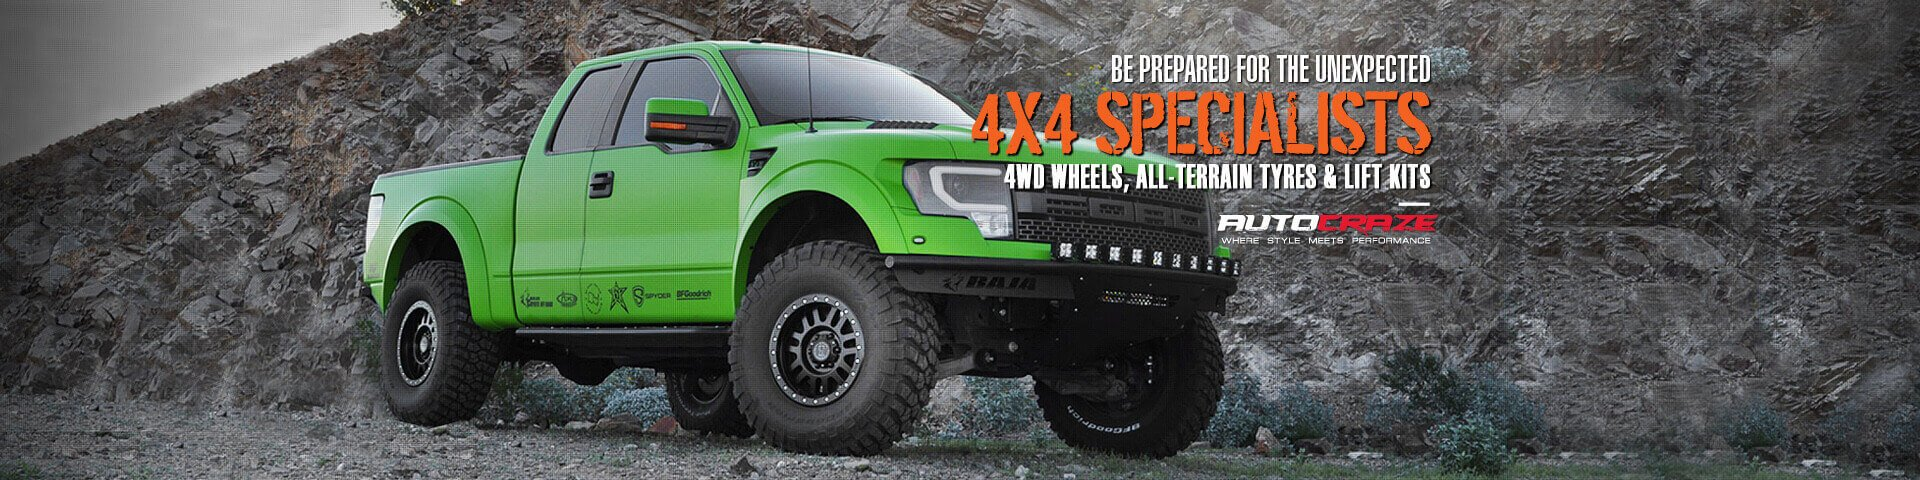 Be prepared for the unexpected | 4X4 specialists | 4wd Wheels| All Terrian Tyres & Lift Kits| Autocraze